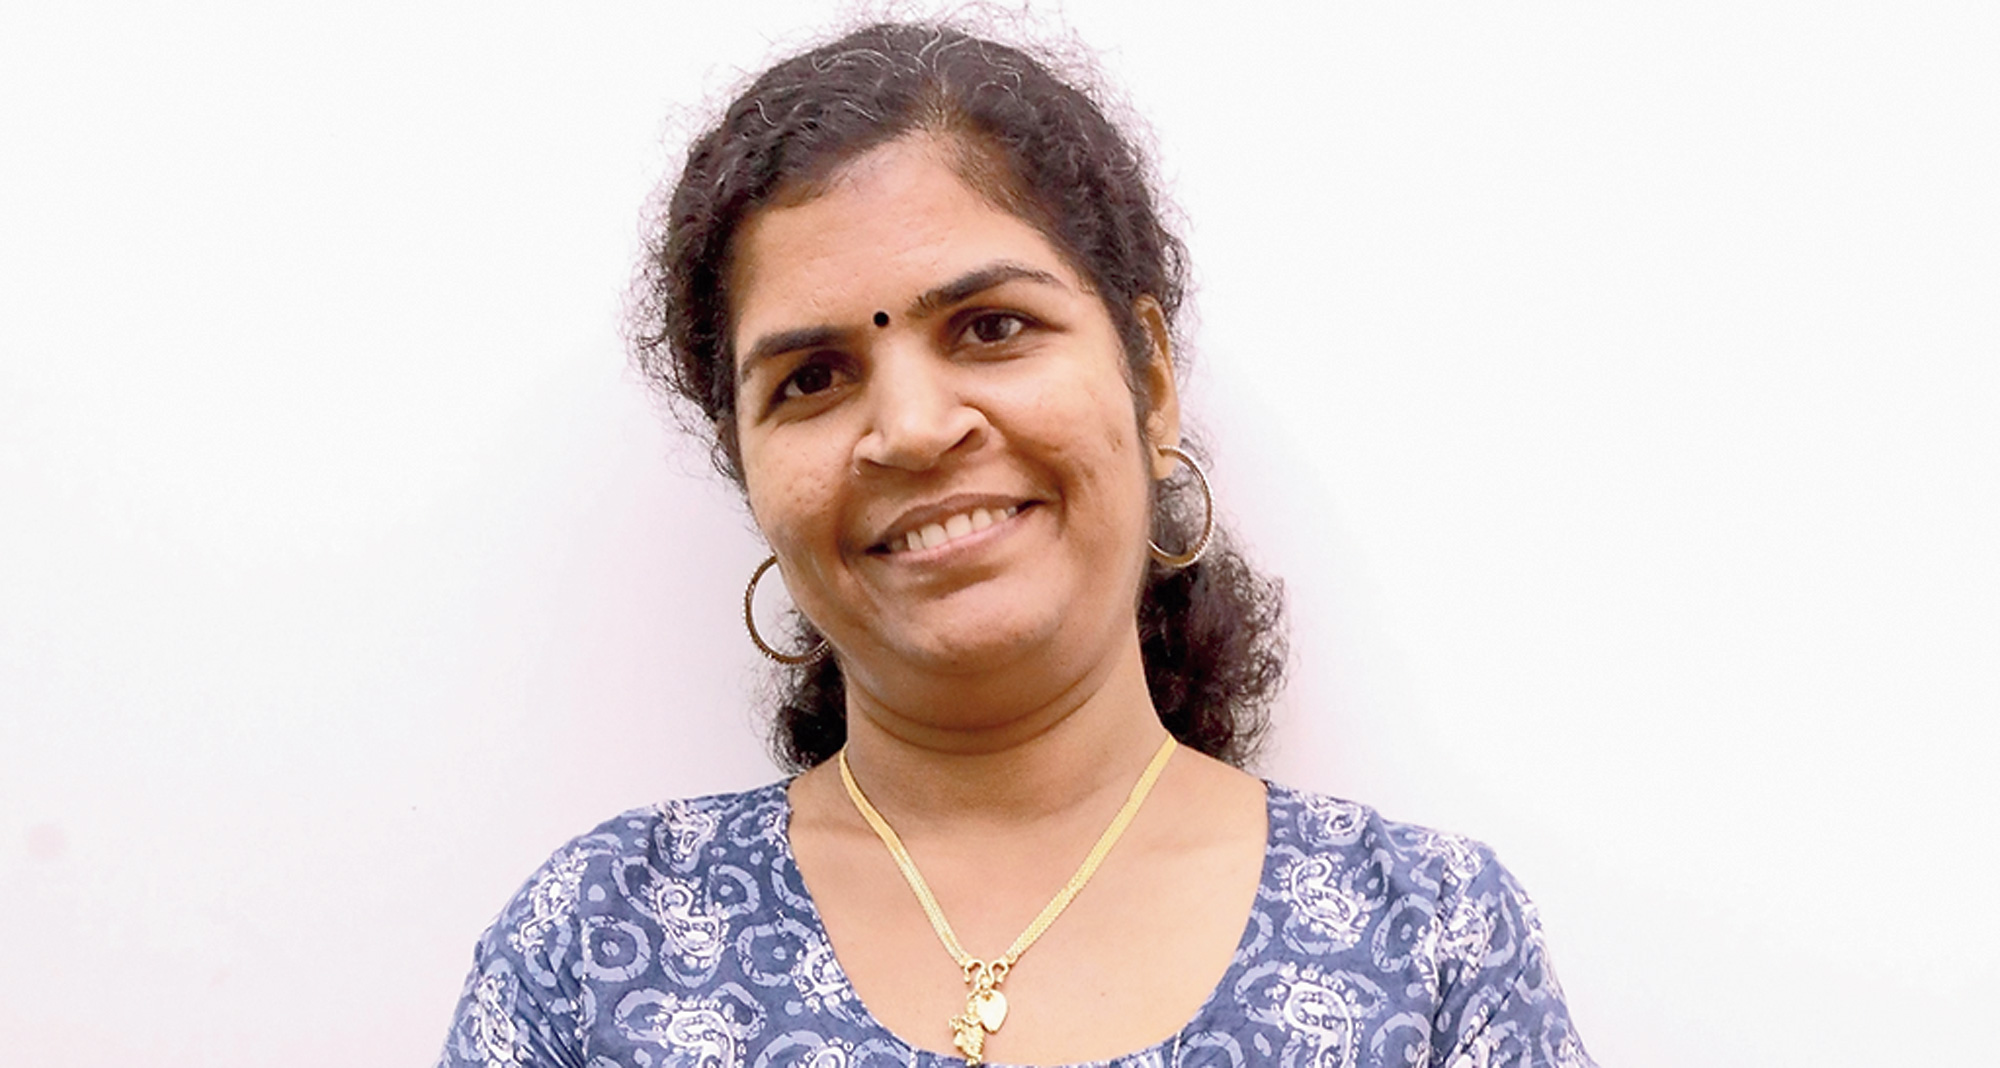 Kanakadurga has been staying at a government home in Malappuram under police security along with her two children.